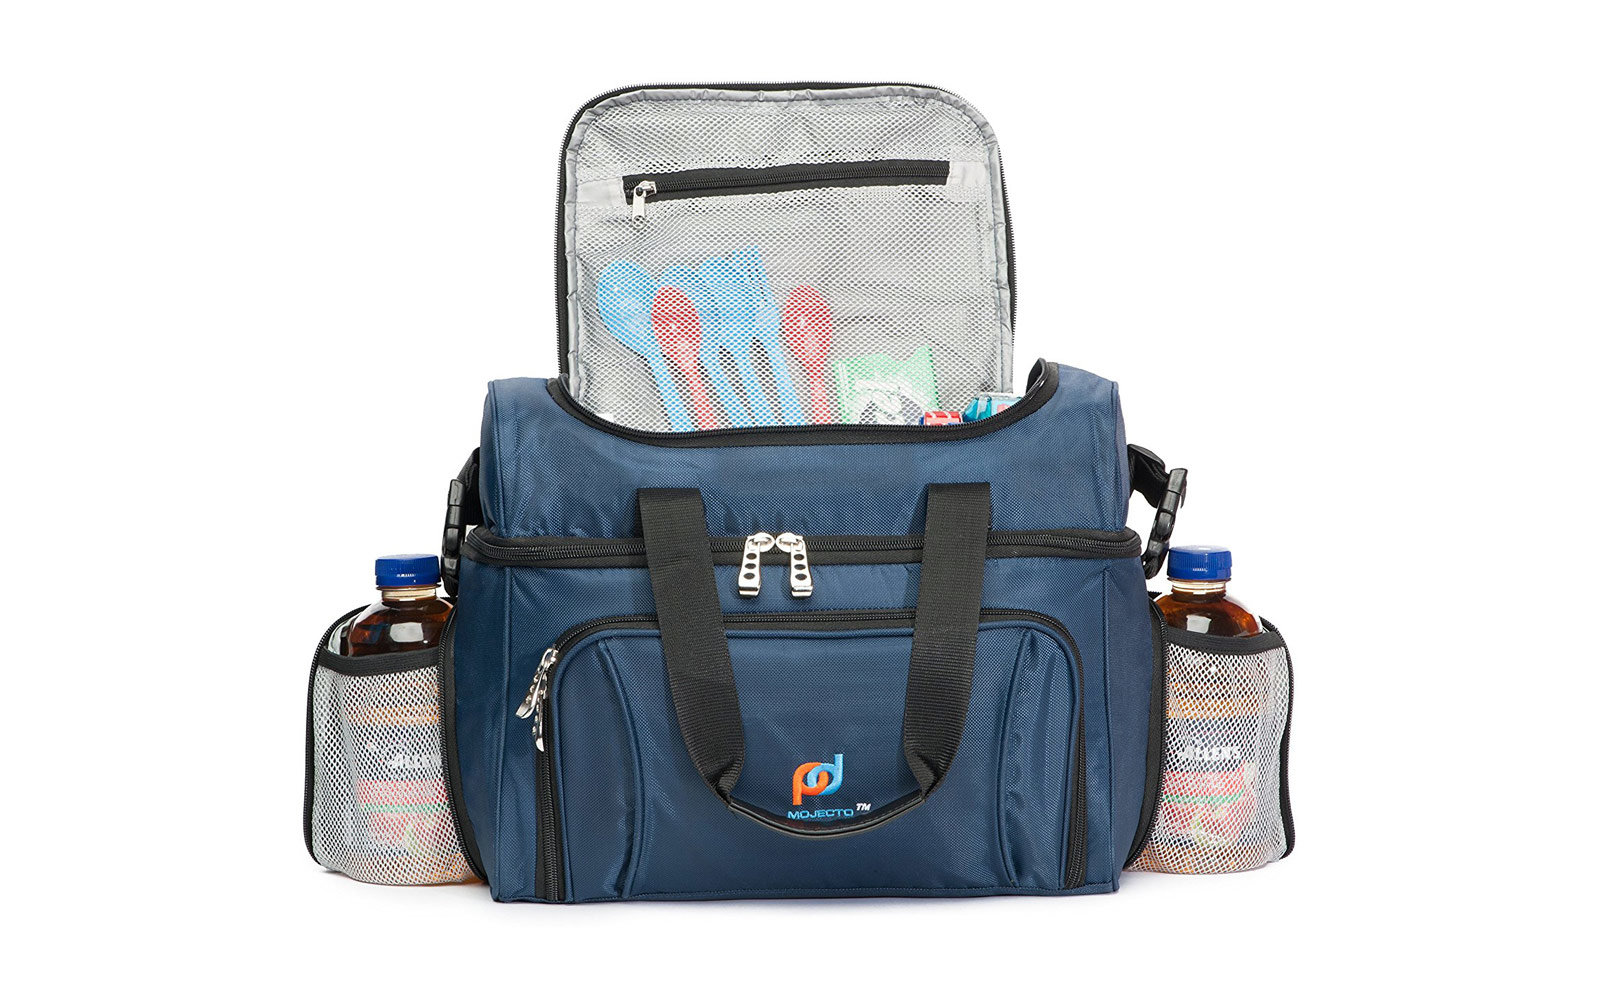 Mojecto Large Cooler Bag